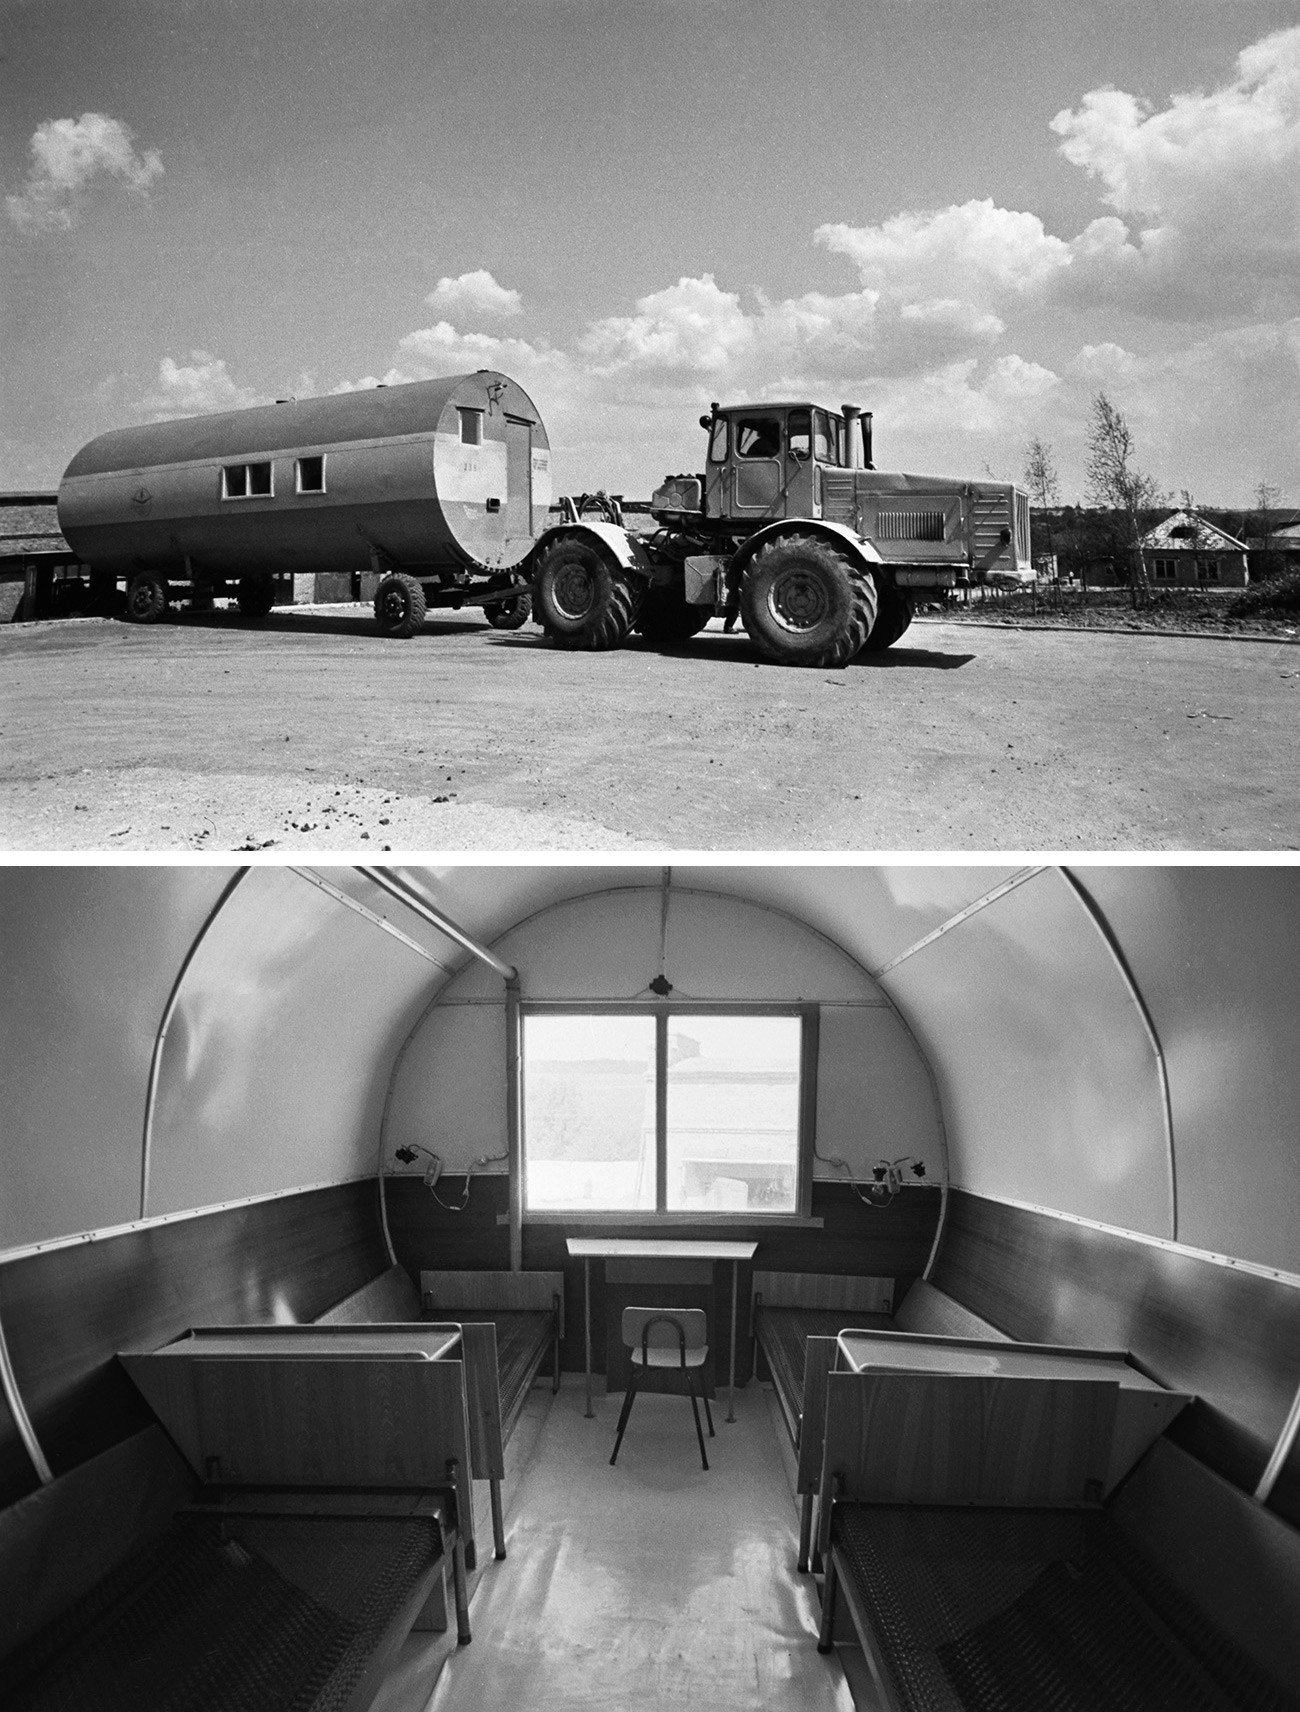 Mobile house for extreme weather conditions, Nizhny Novgorod Region, 1975.